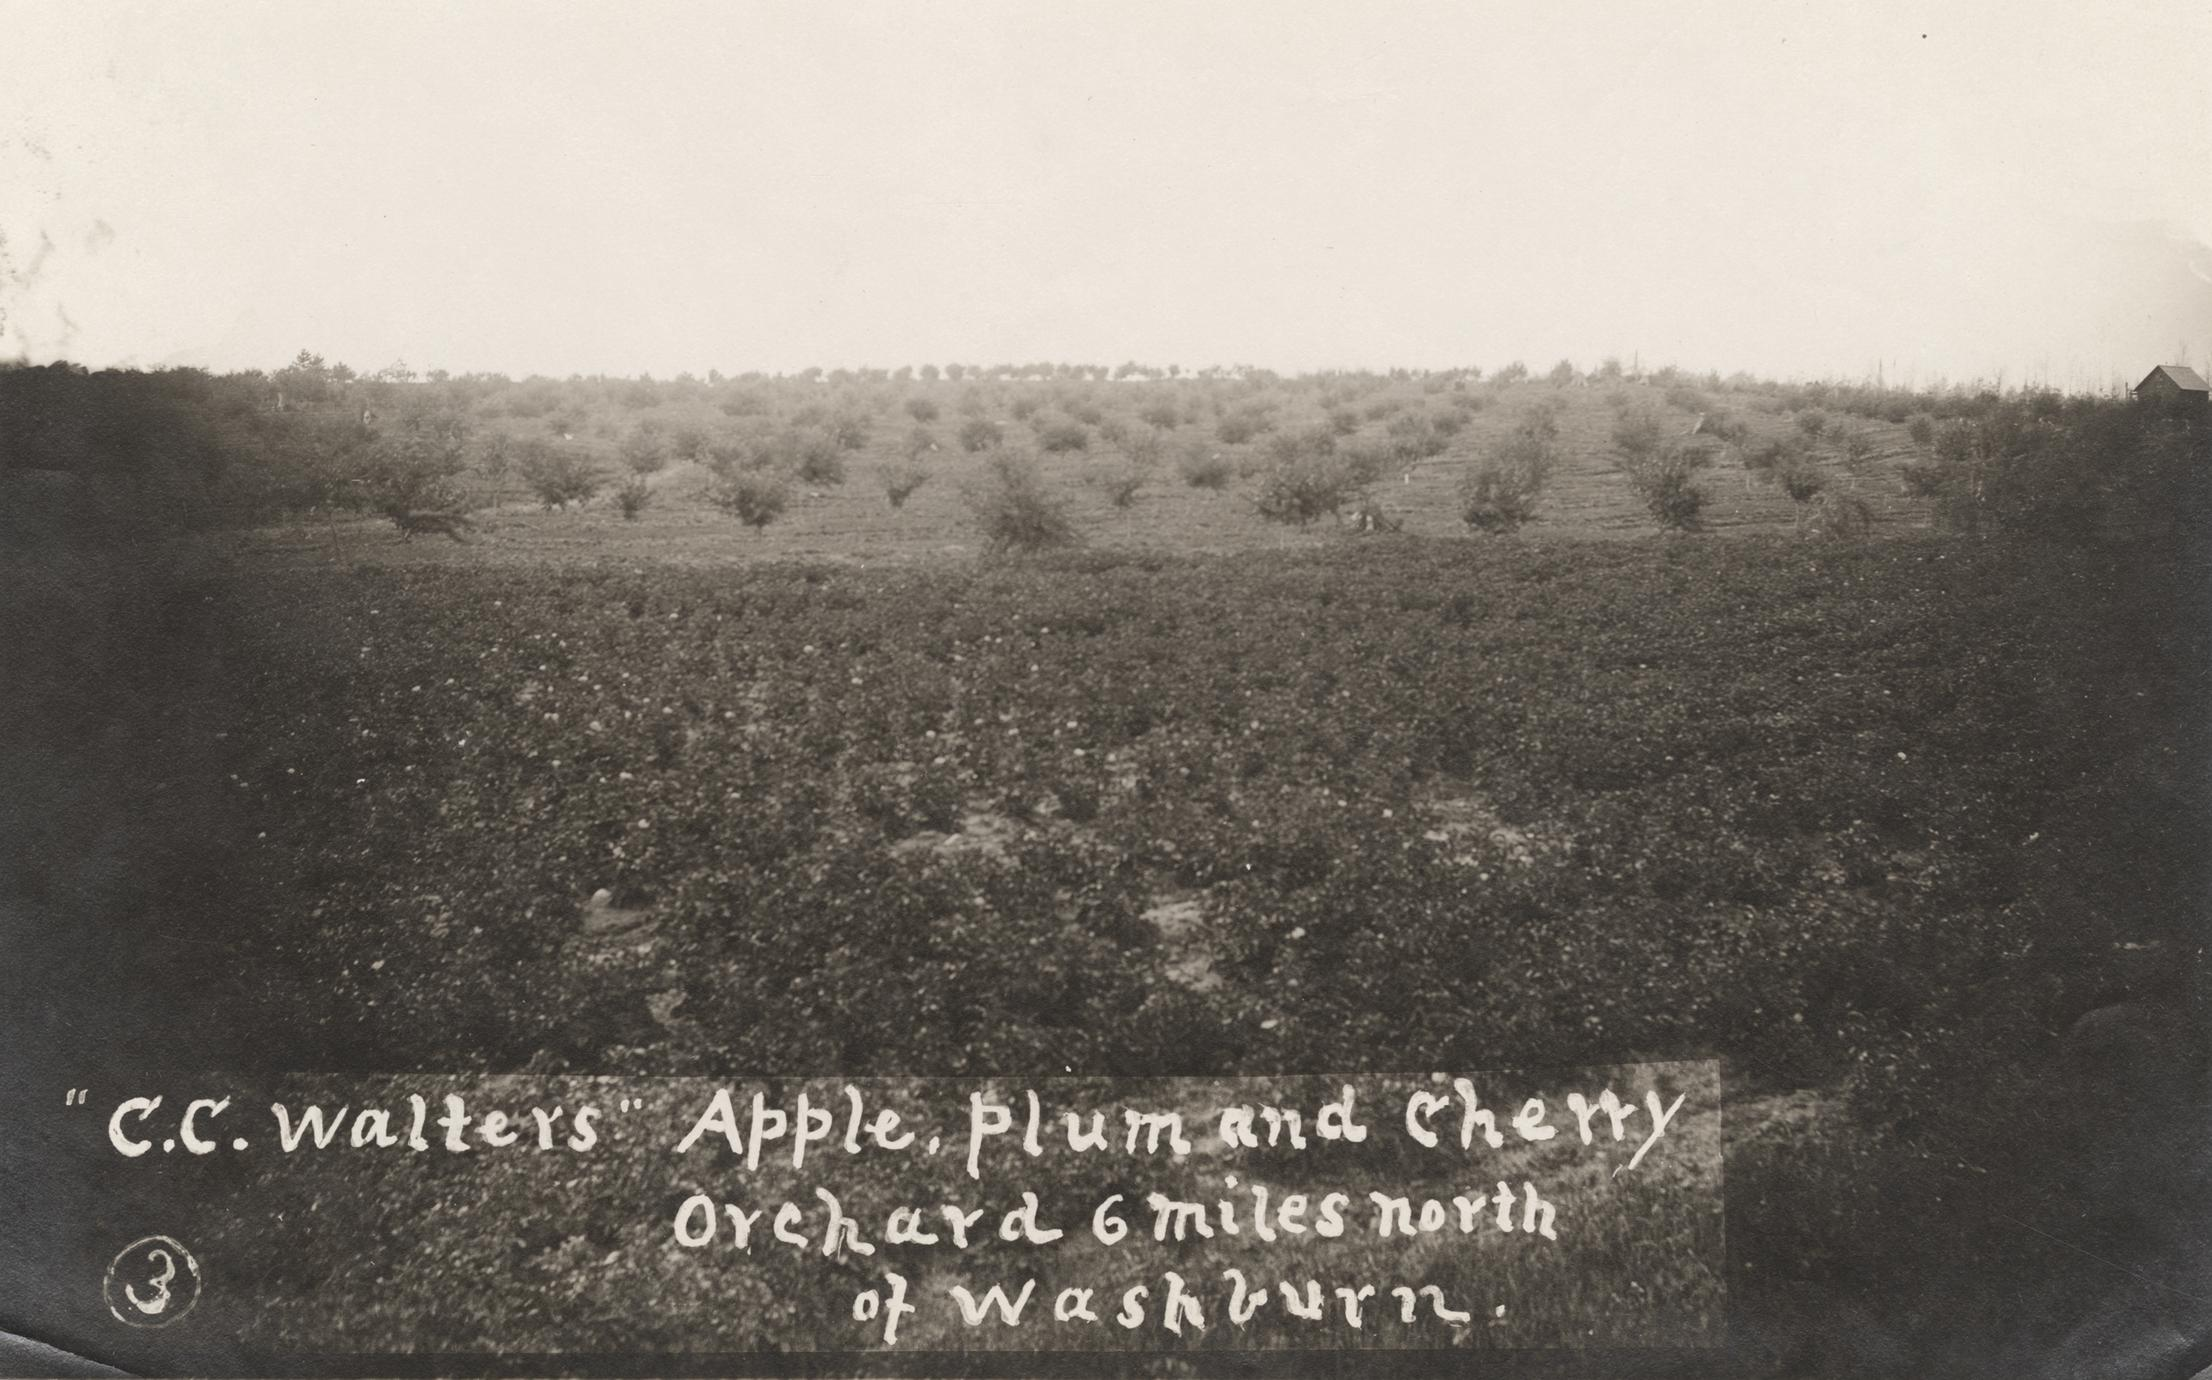 Apple, plum, and cherry orchard